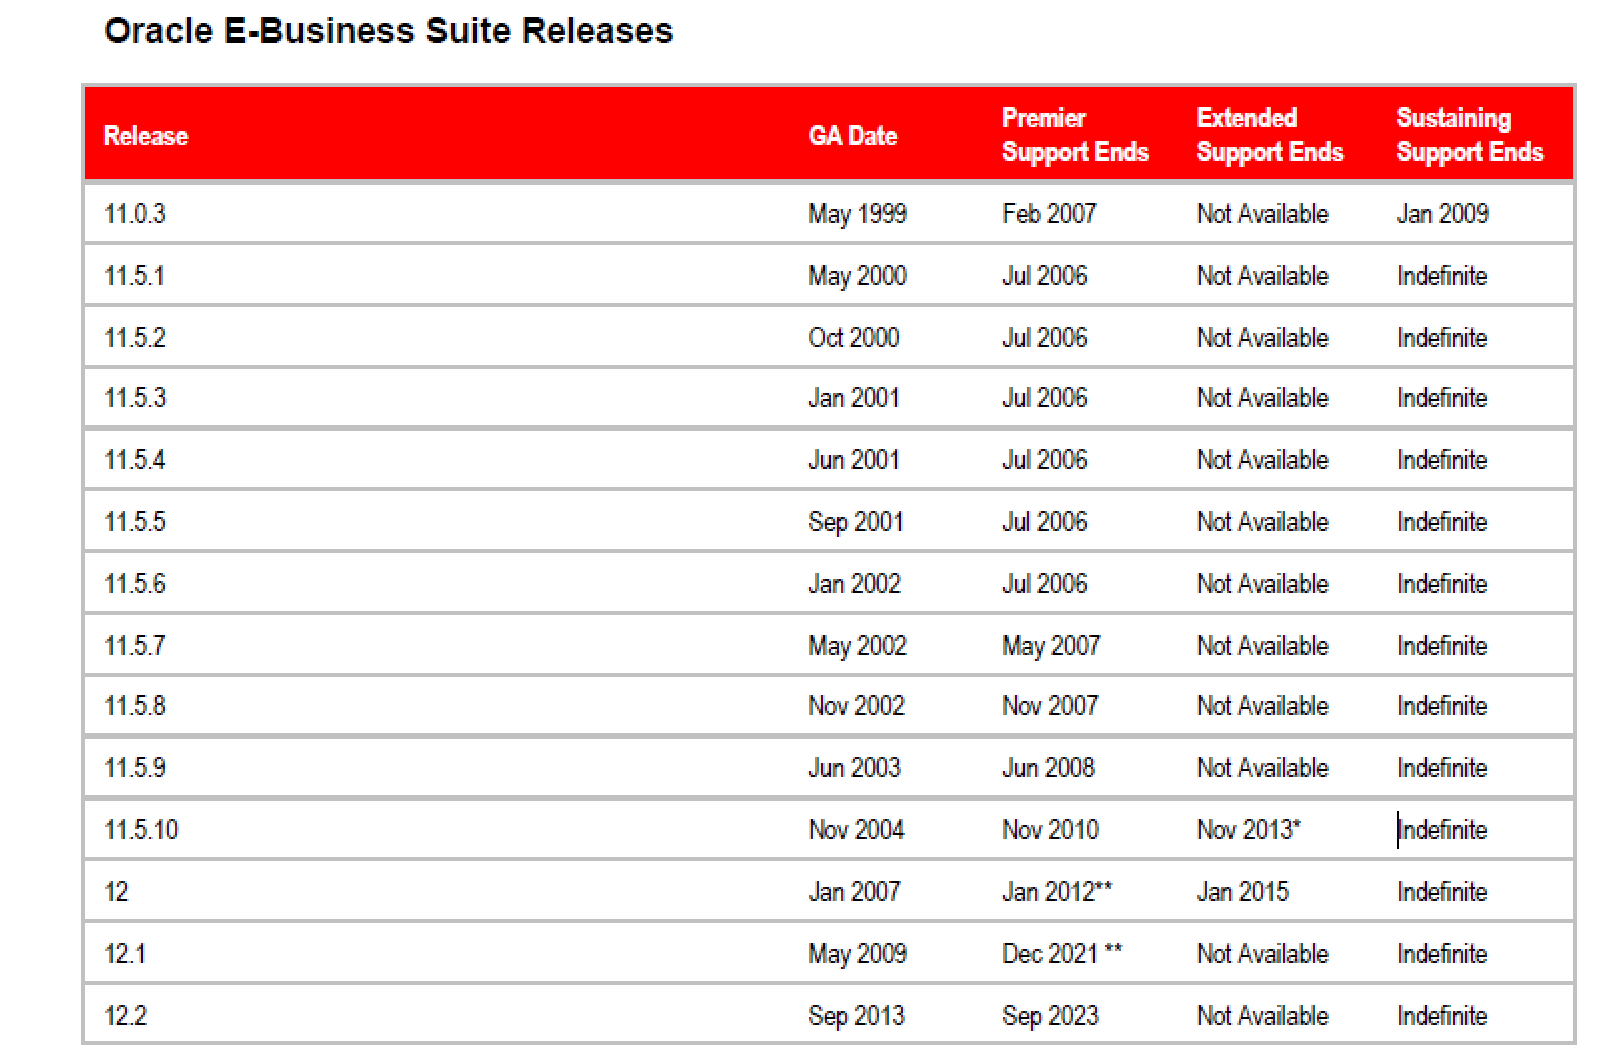 Major Oracle E-Business Suite Changes - Oracle Open World